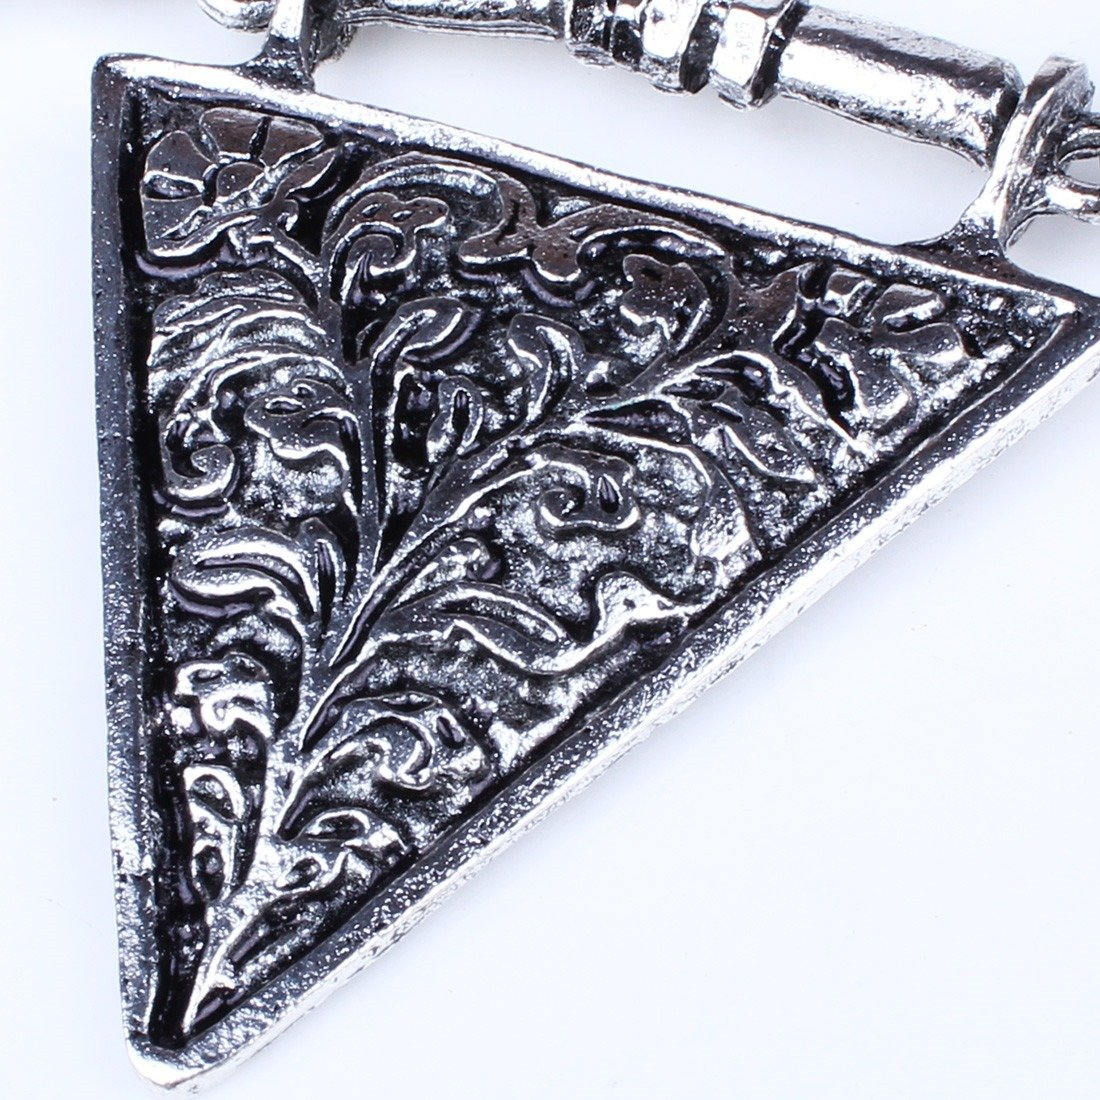 Qiyun Punk Rock Chunky Tibet Silver Spiky Rivet Charm Triangle Geometric Bib Necklace Le Rivet Argent He risse s Triangle Ge ome trique Collier W005N2260